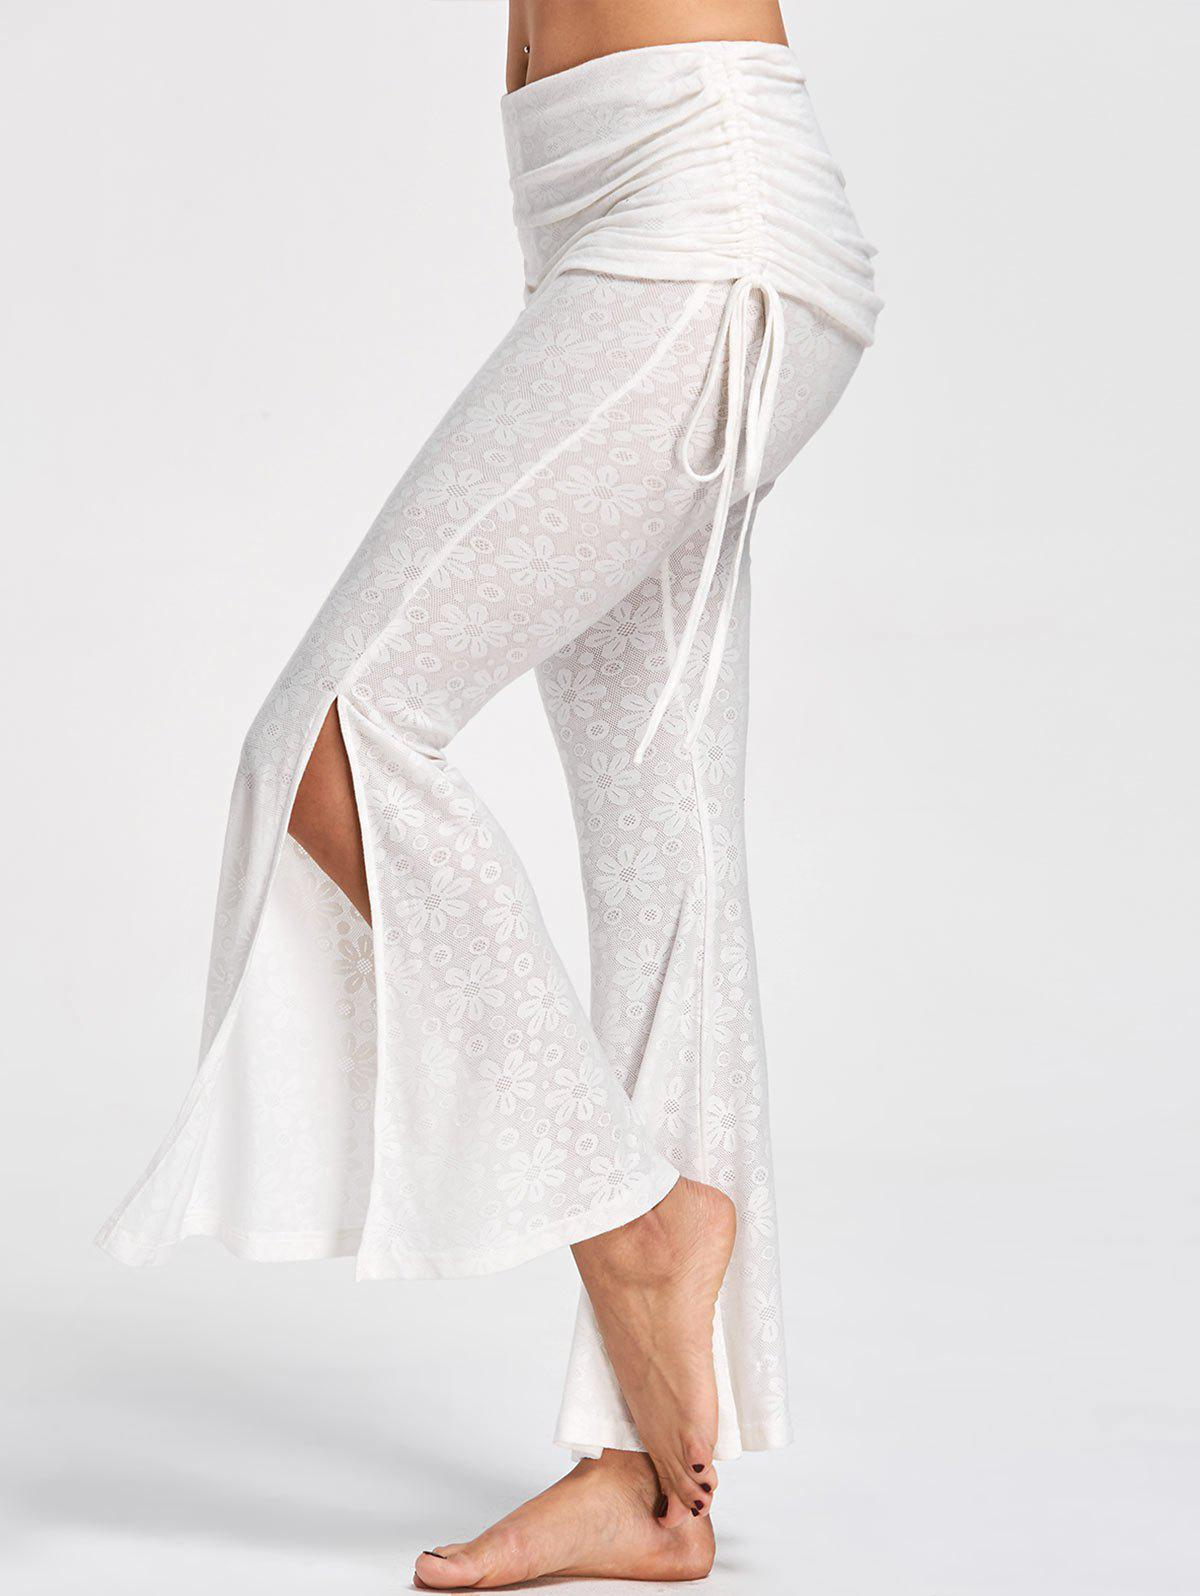 Foldover Floral Slit Flare Pants - OFF WHITE 2XL